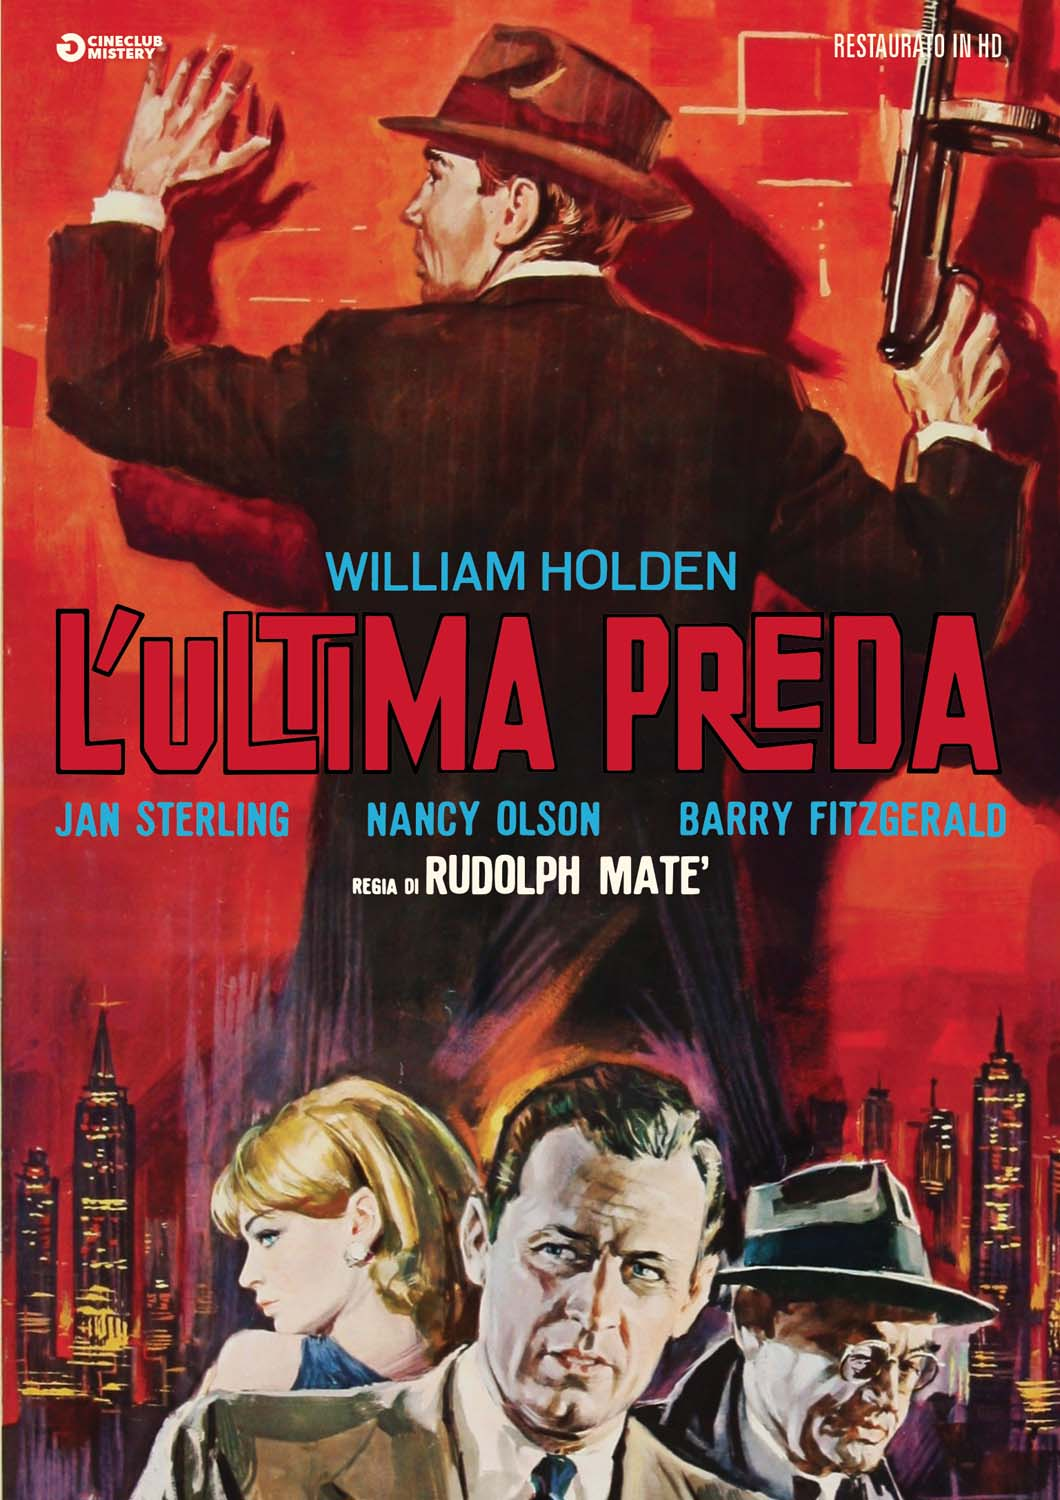 L'ULTIMA PREDA (RESTAURATO IN HD) (DVD)